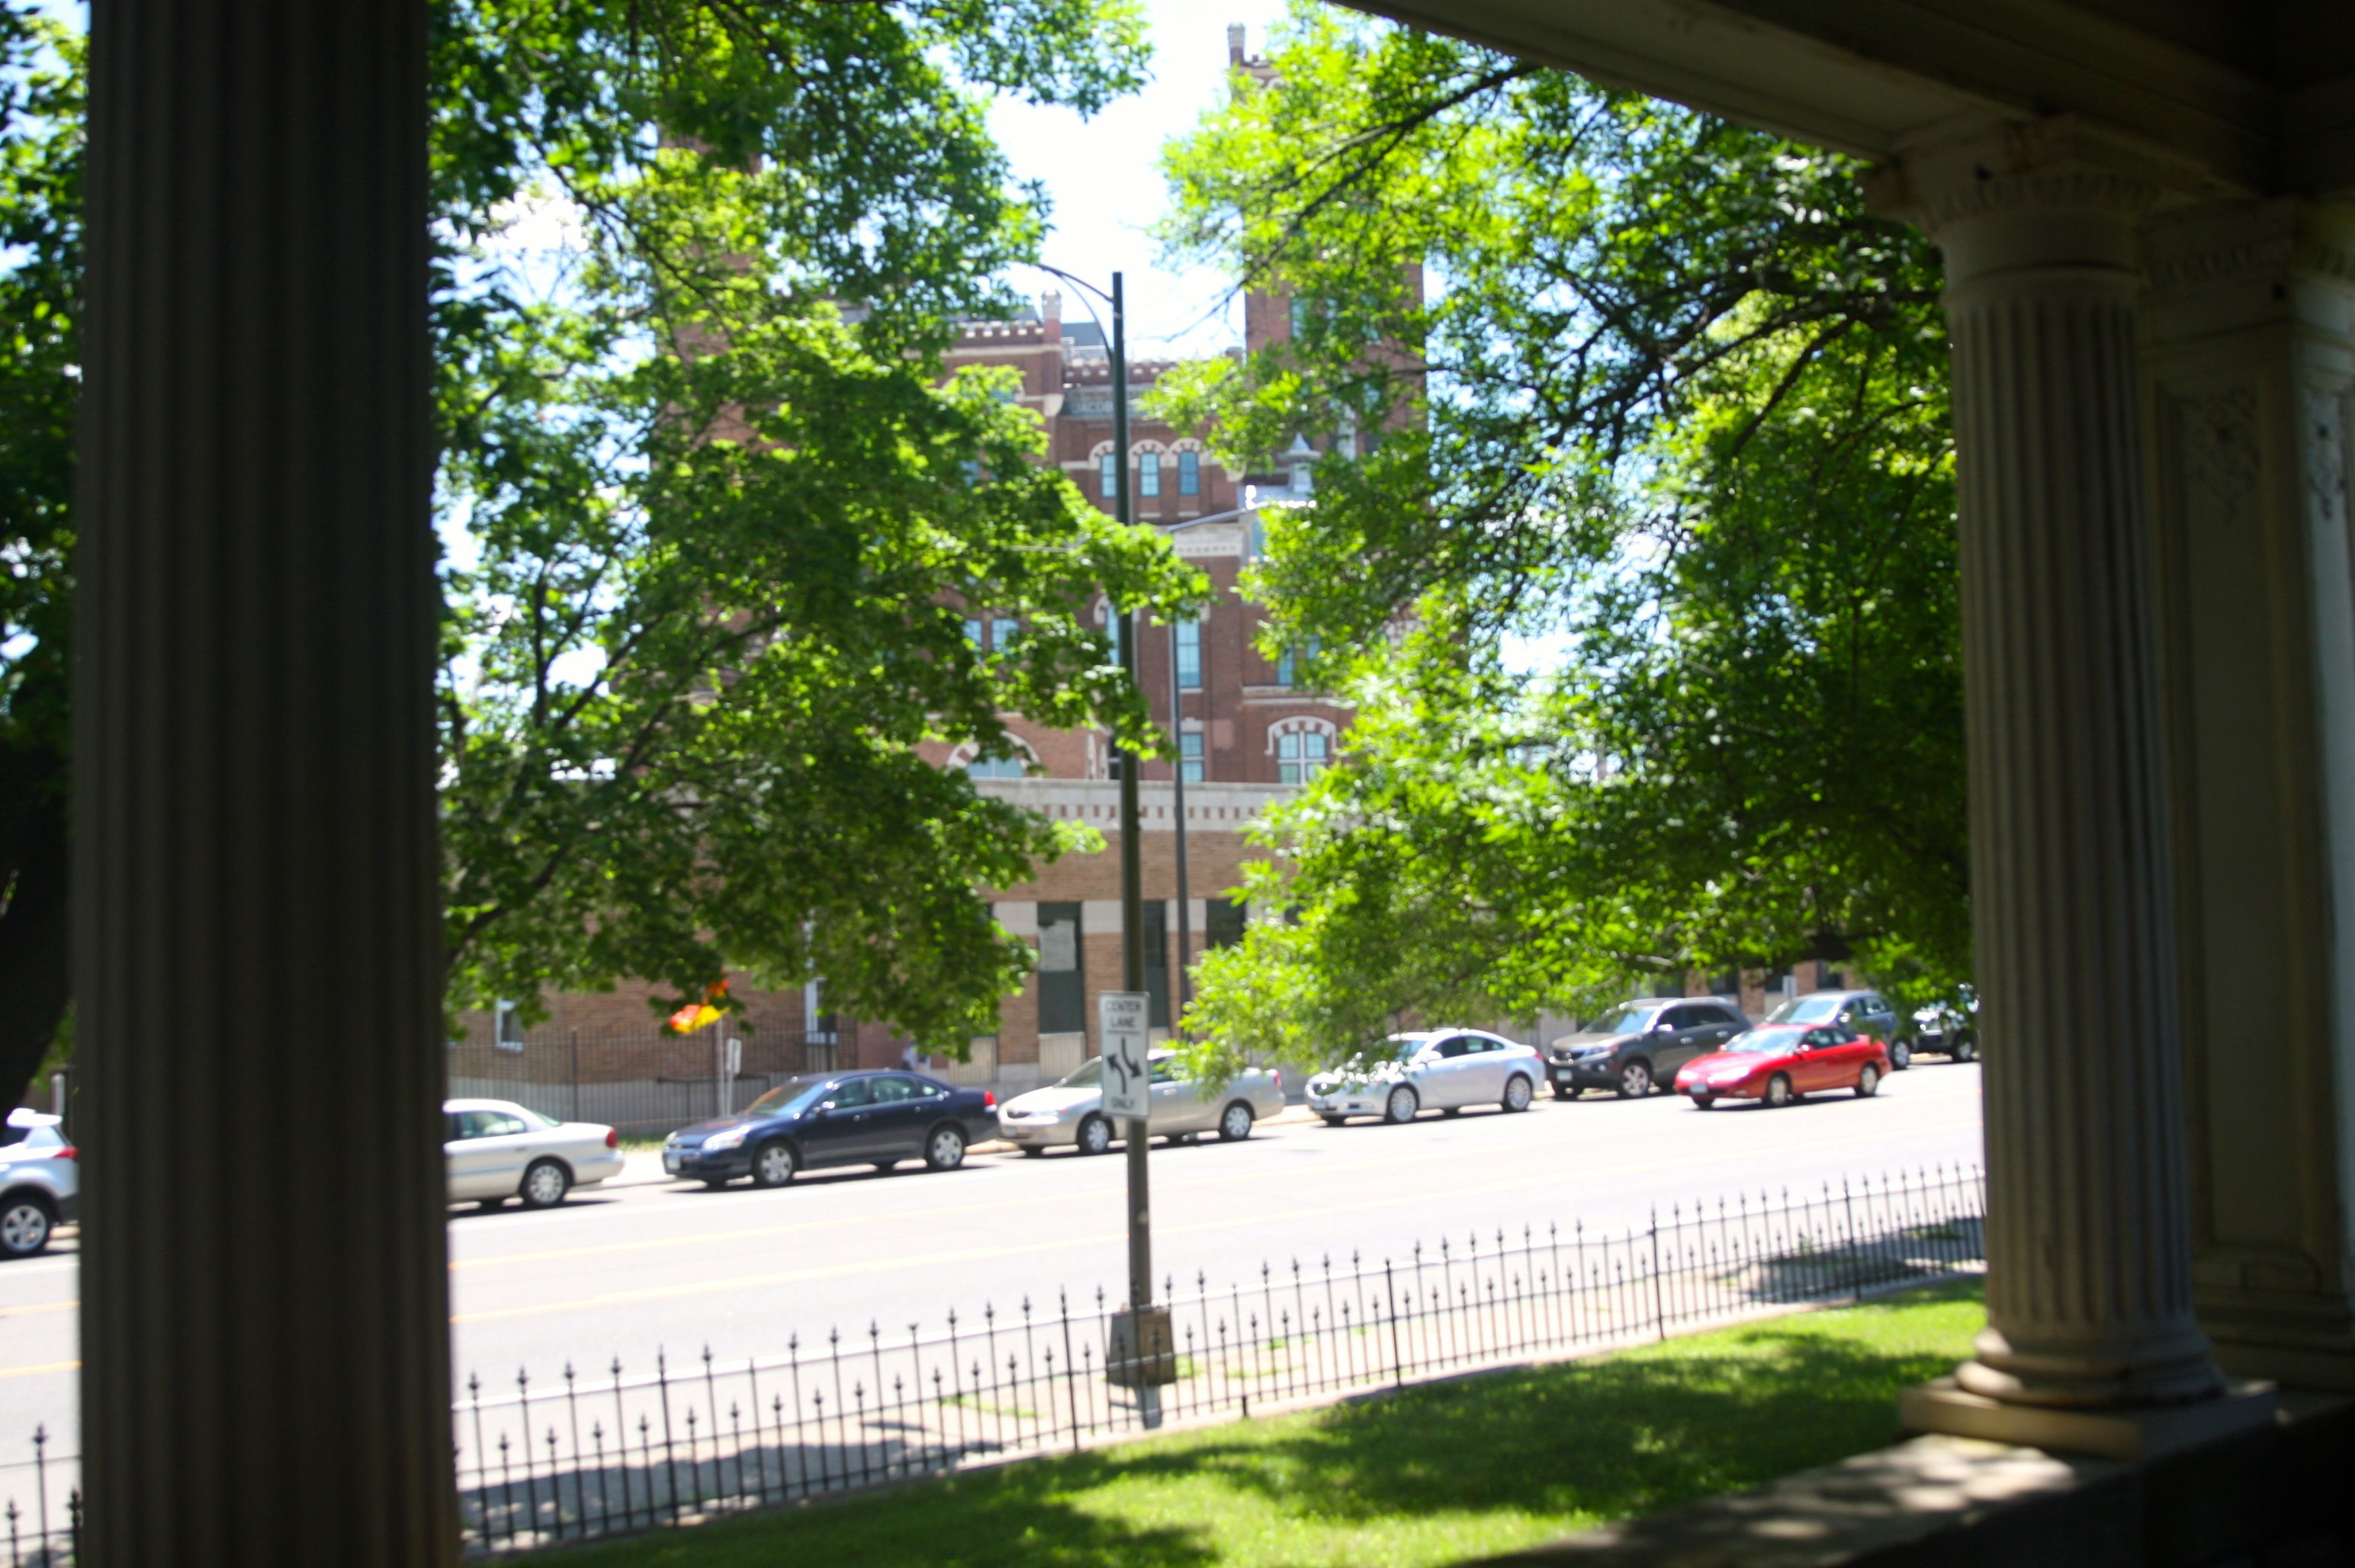 Even with the heavy traffic along West 7th, it's not hard envisioning he convenience the Stahlmanns and later the Schmidt family enjoyed living across the street from their brewery. This is the view from the front porch of the former Bremer home.